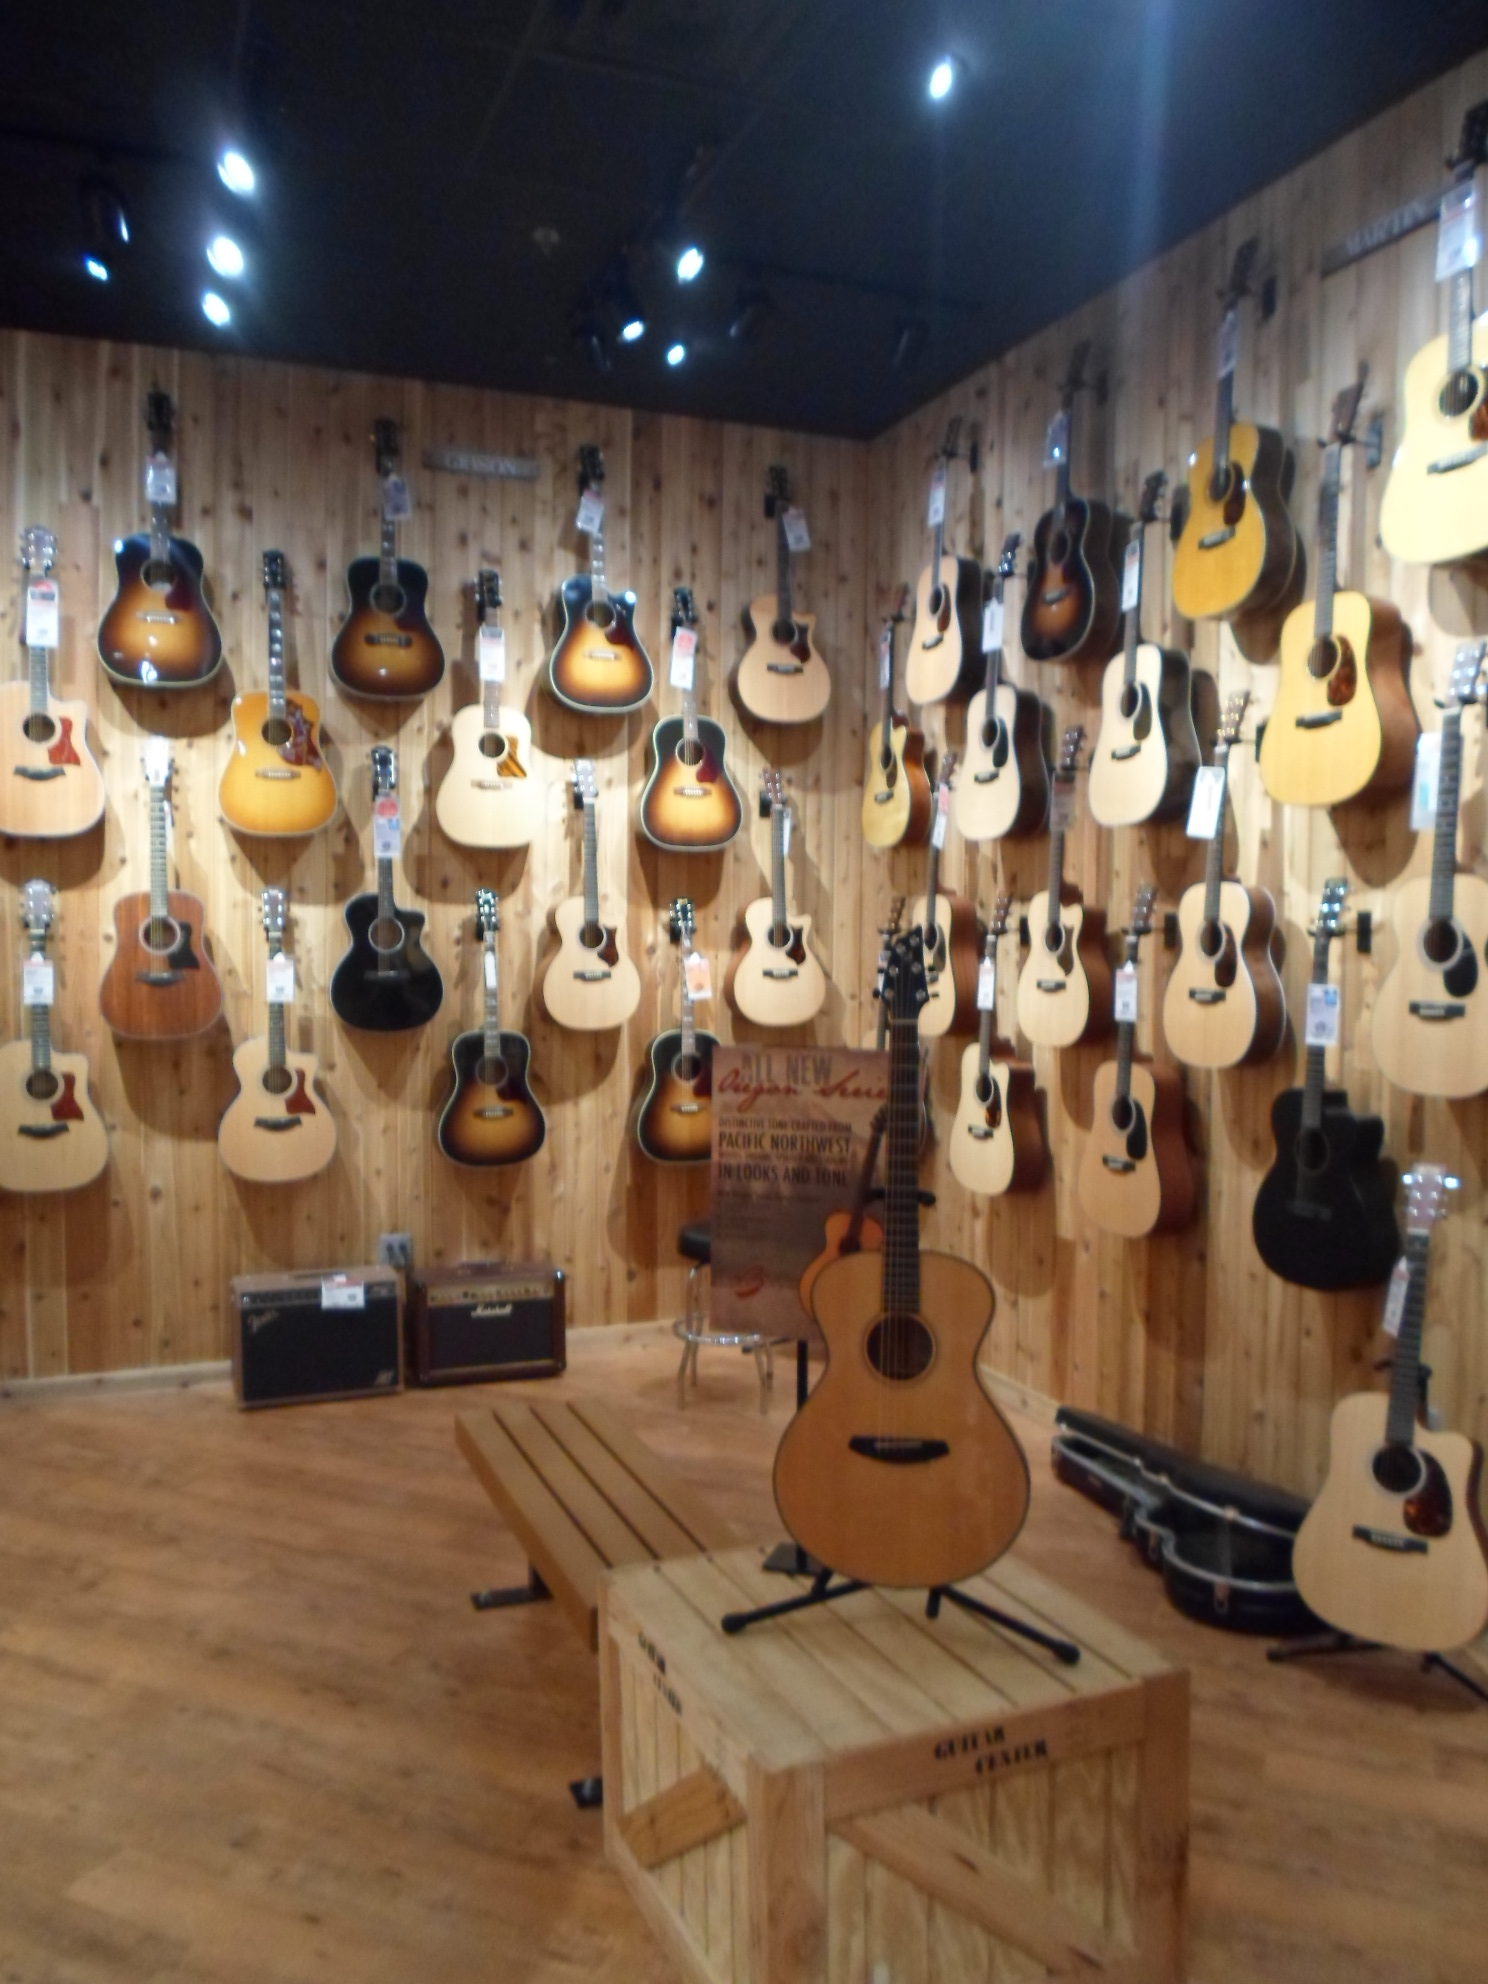 guitar center lessons coupons near me in charlotte 8coupons. Black Bedroom Furniture Sets. Home Design Ideas